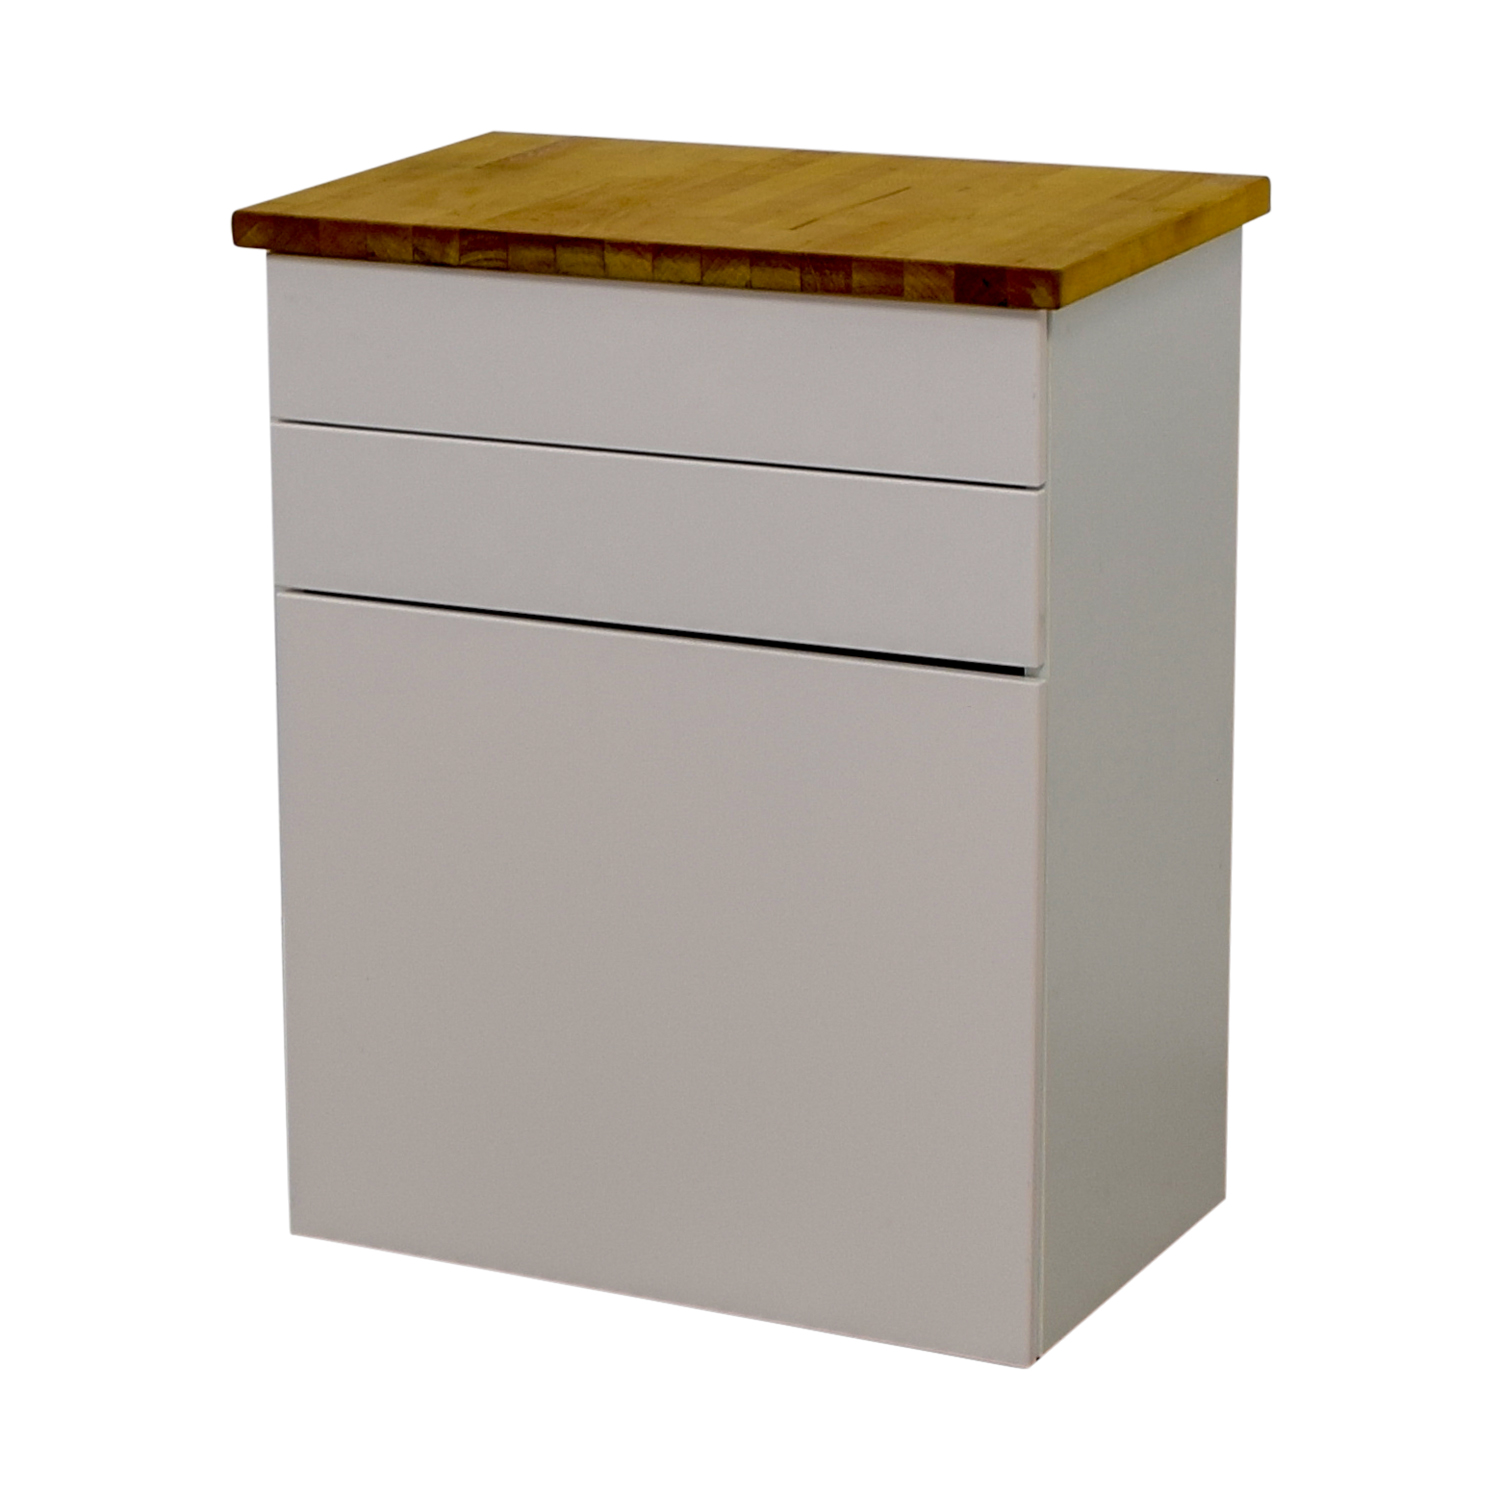 74 off ikea ikea white butcher block counter cabinet for Ikea butcher block table